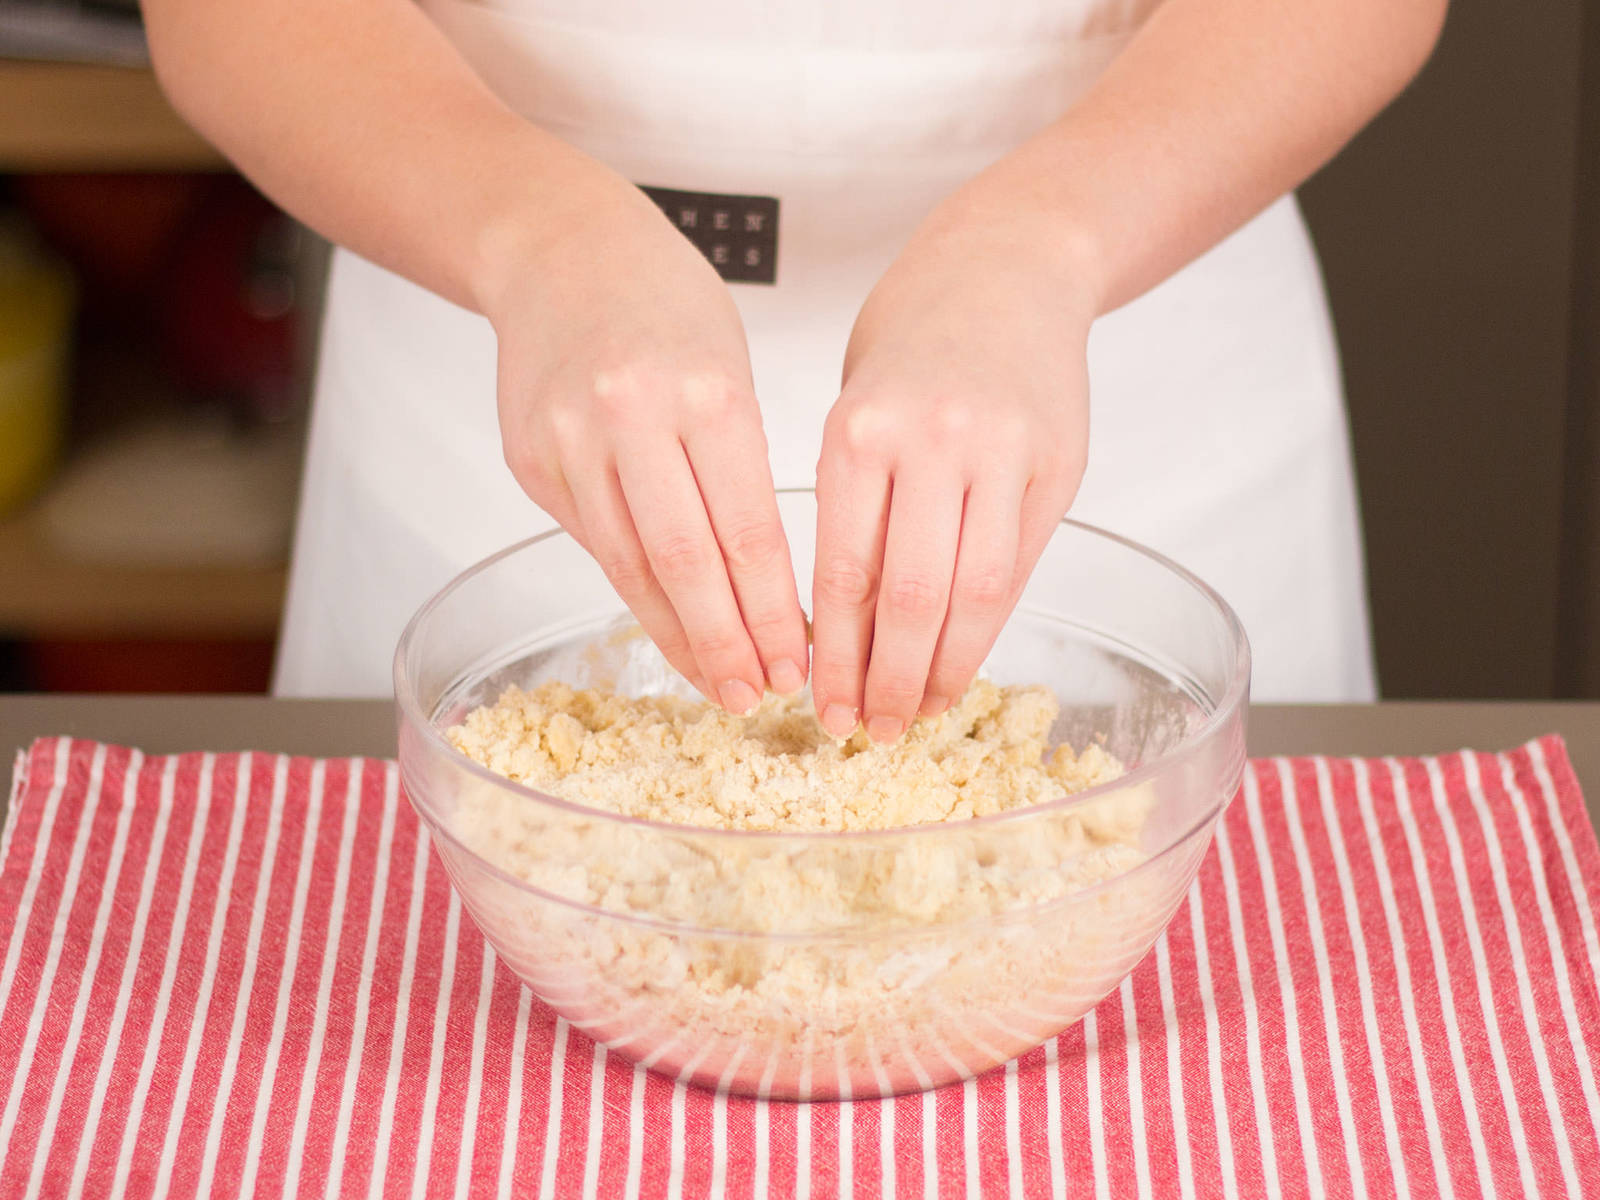 In a large bowl, mix remaining butter, sugar, flour, and vanilla sugar into coarse crumbles with your fingers.